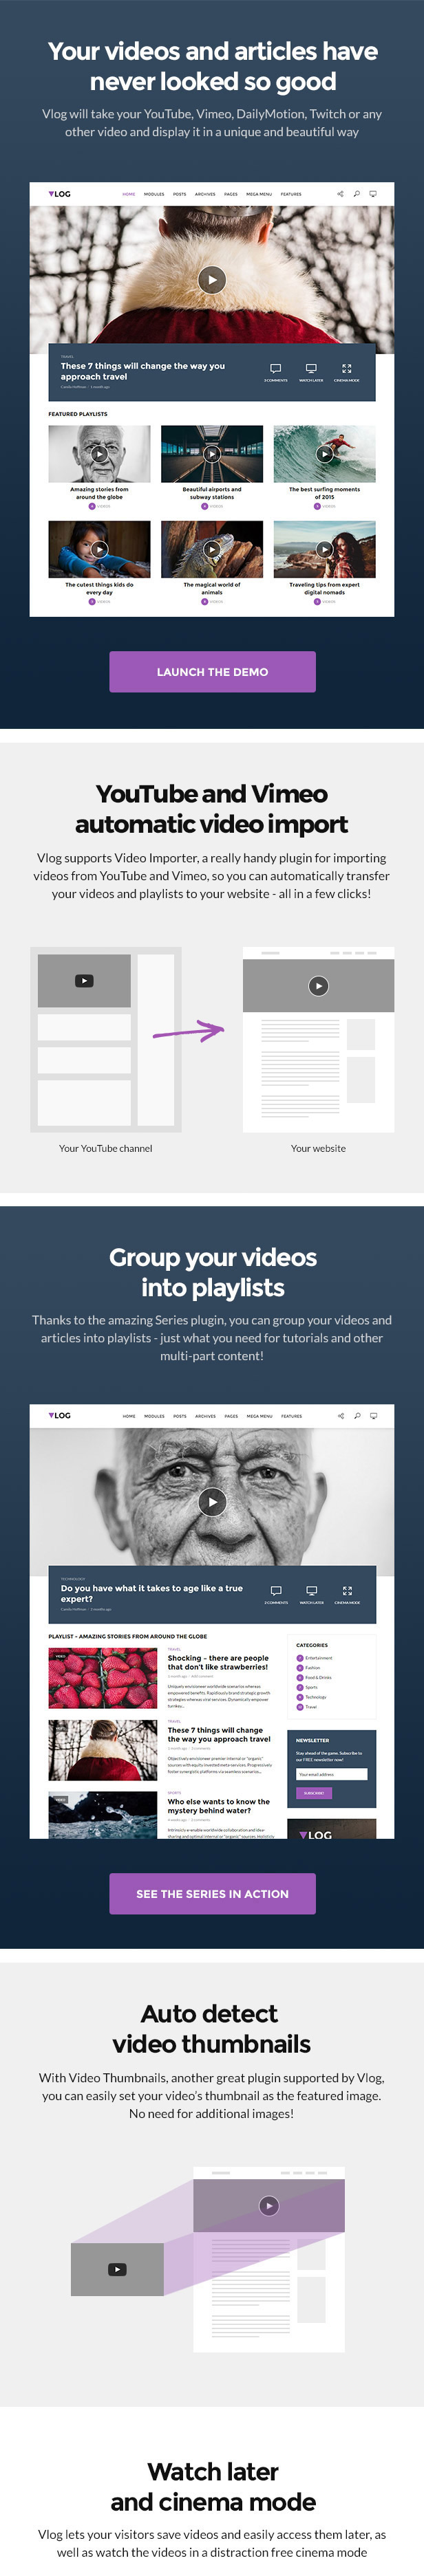 Vlog - Video Blog / Magazine WordPress Theme